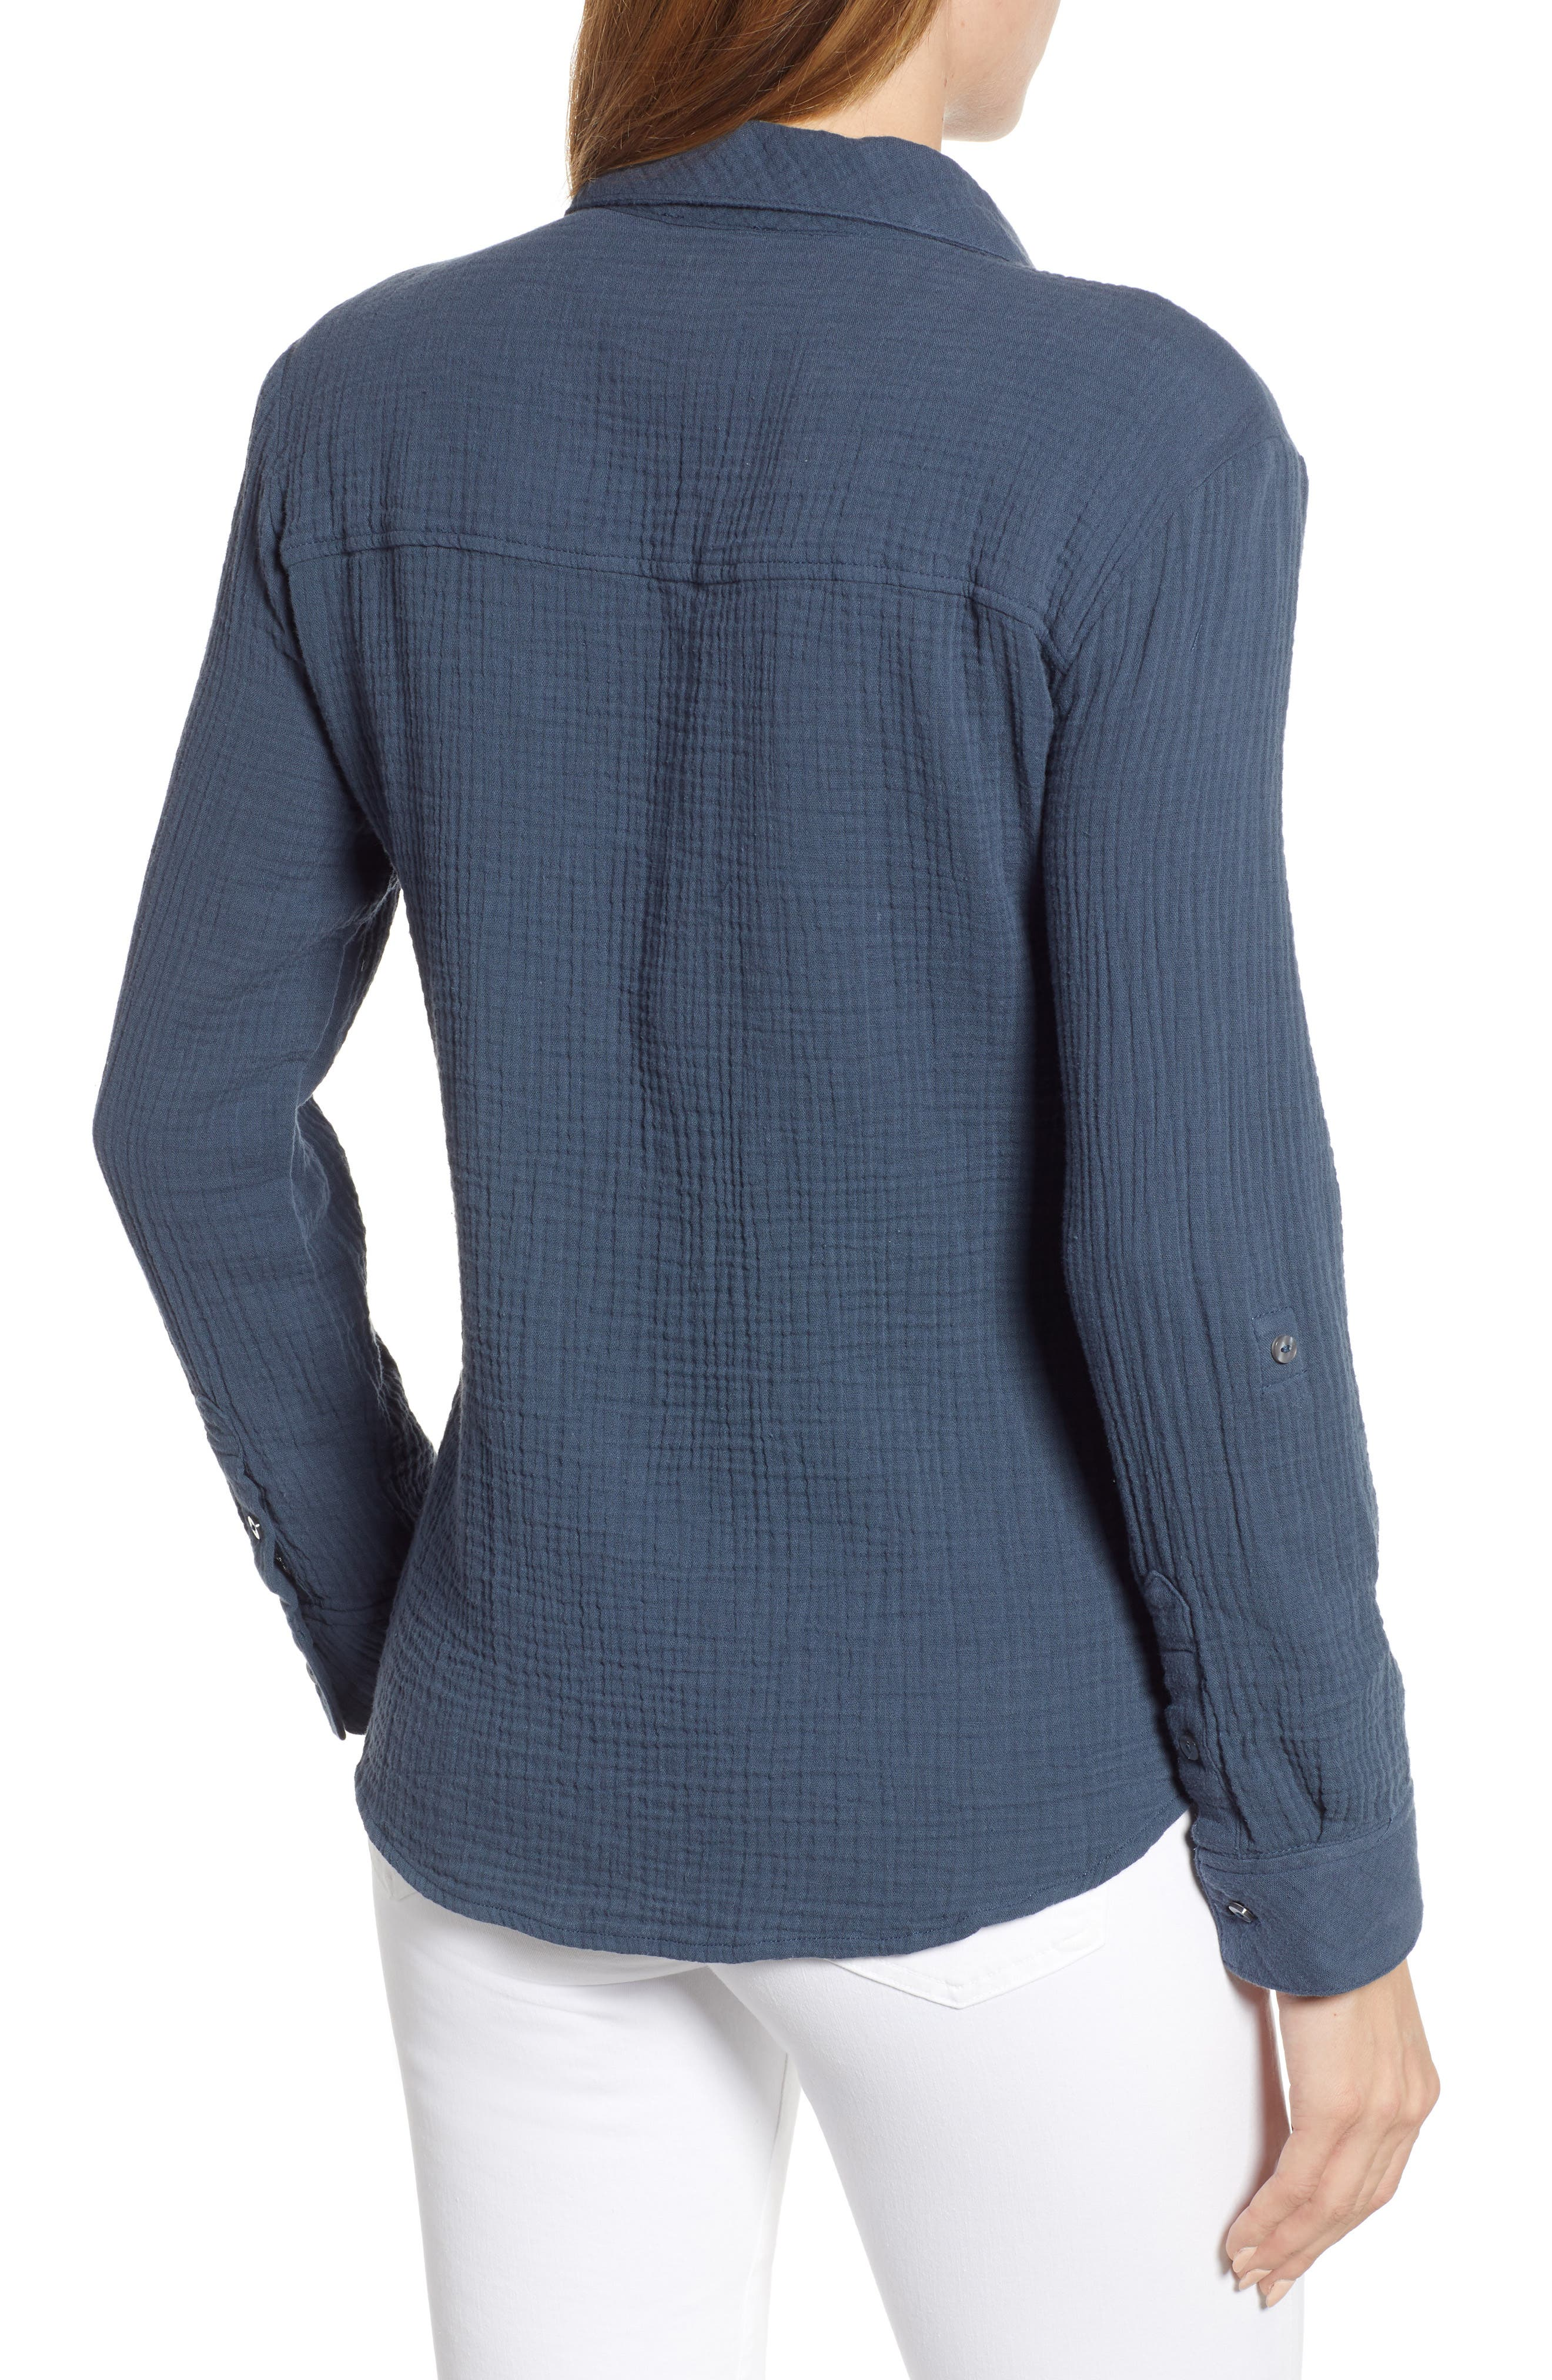 1.STATE, Patch Pocket Gauze Top, Alternate thumbnail 2, color, MIDNIGHT SKY